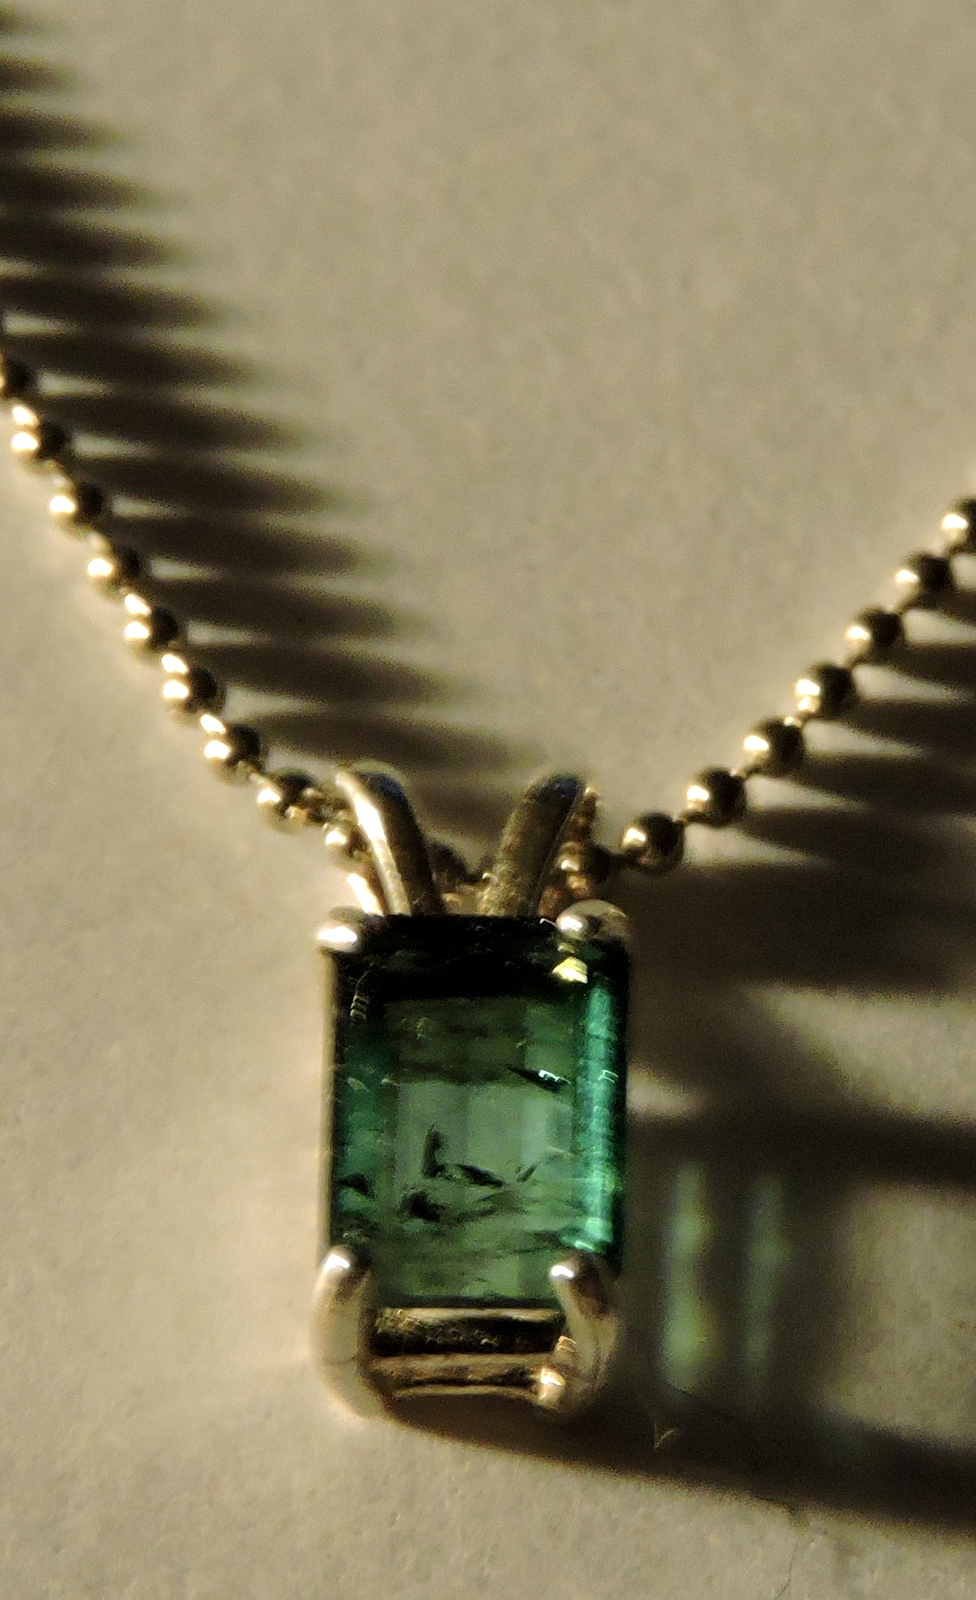 Lovely Faceted Octagon Cut 7x5mm Blue Indicolite Tourmaline Pendant  Necklace